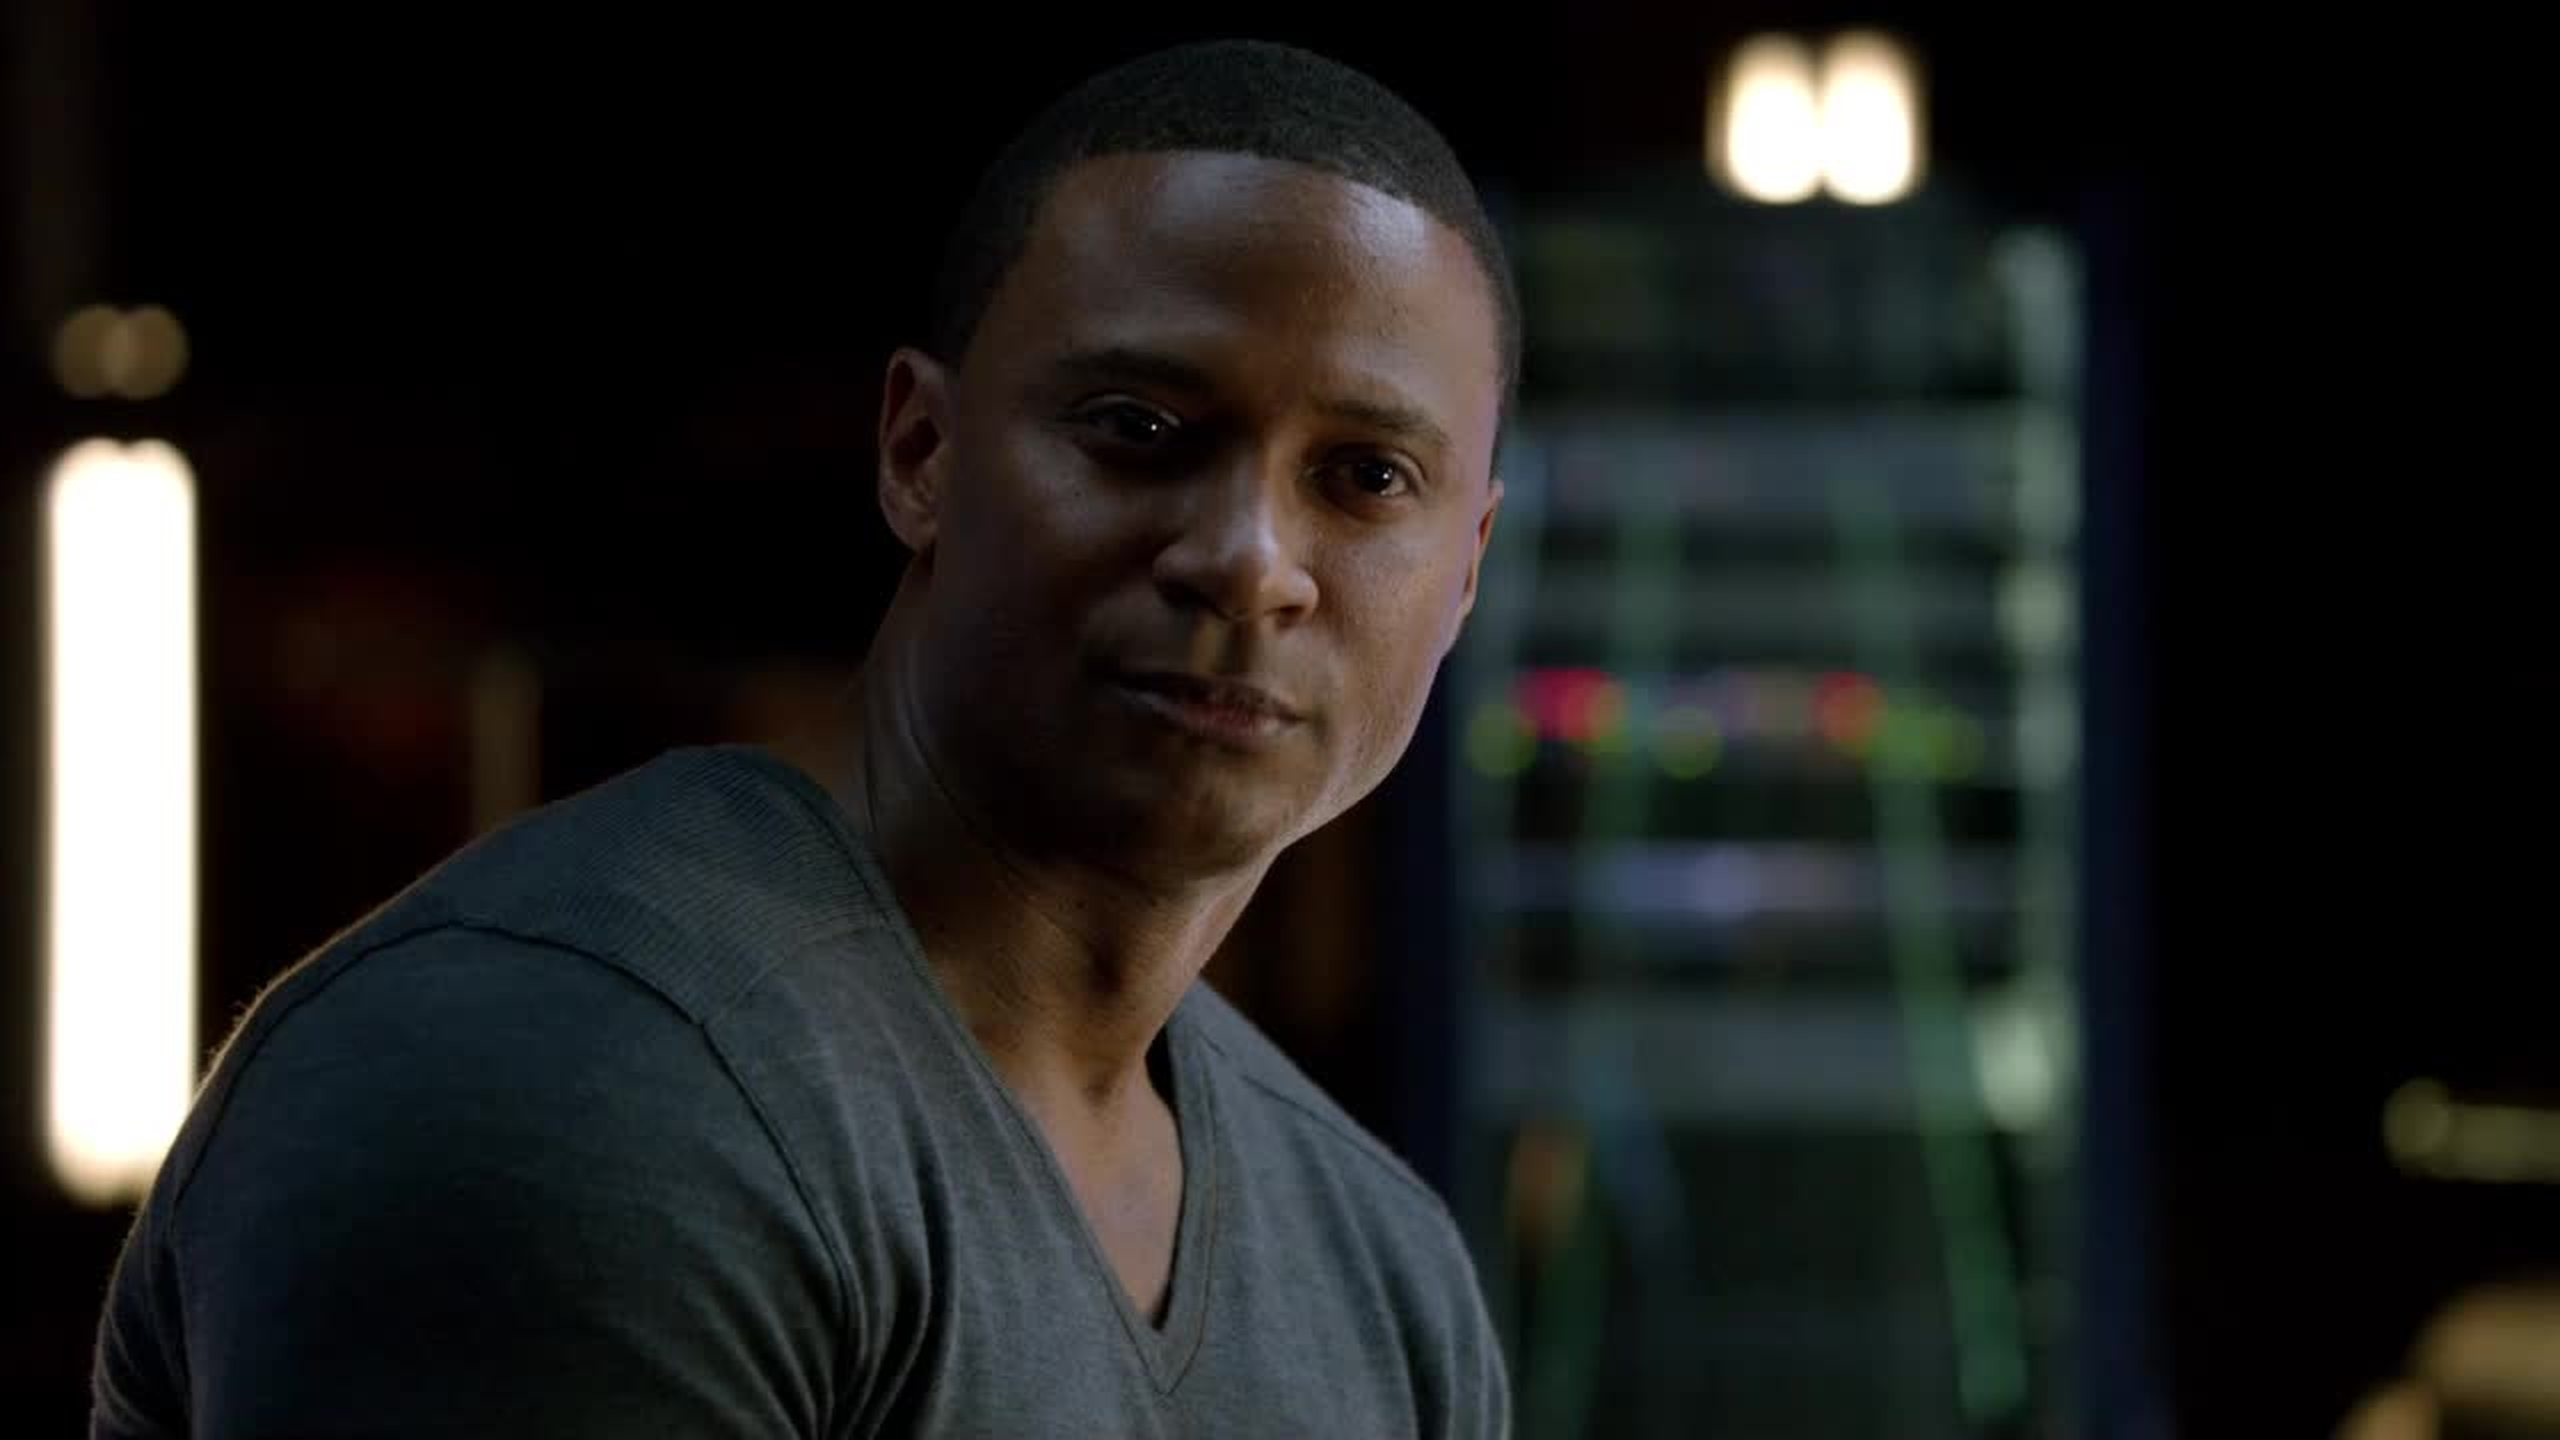 I just have one comment: Diggle <3